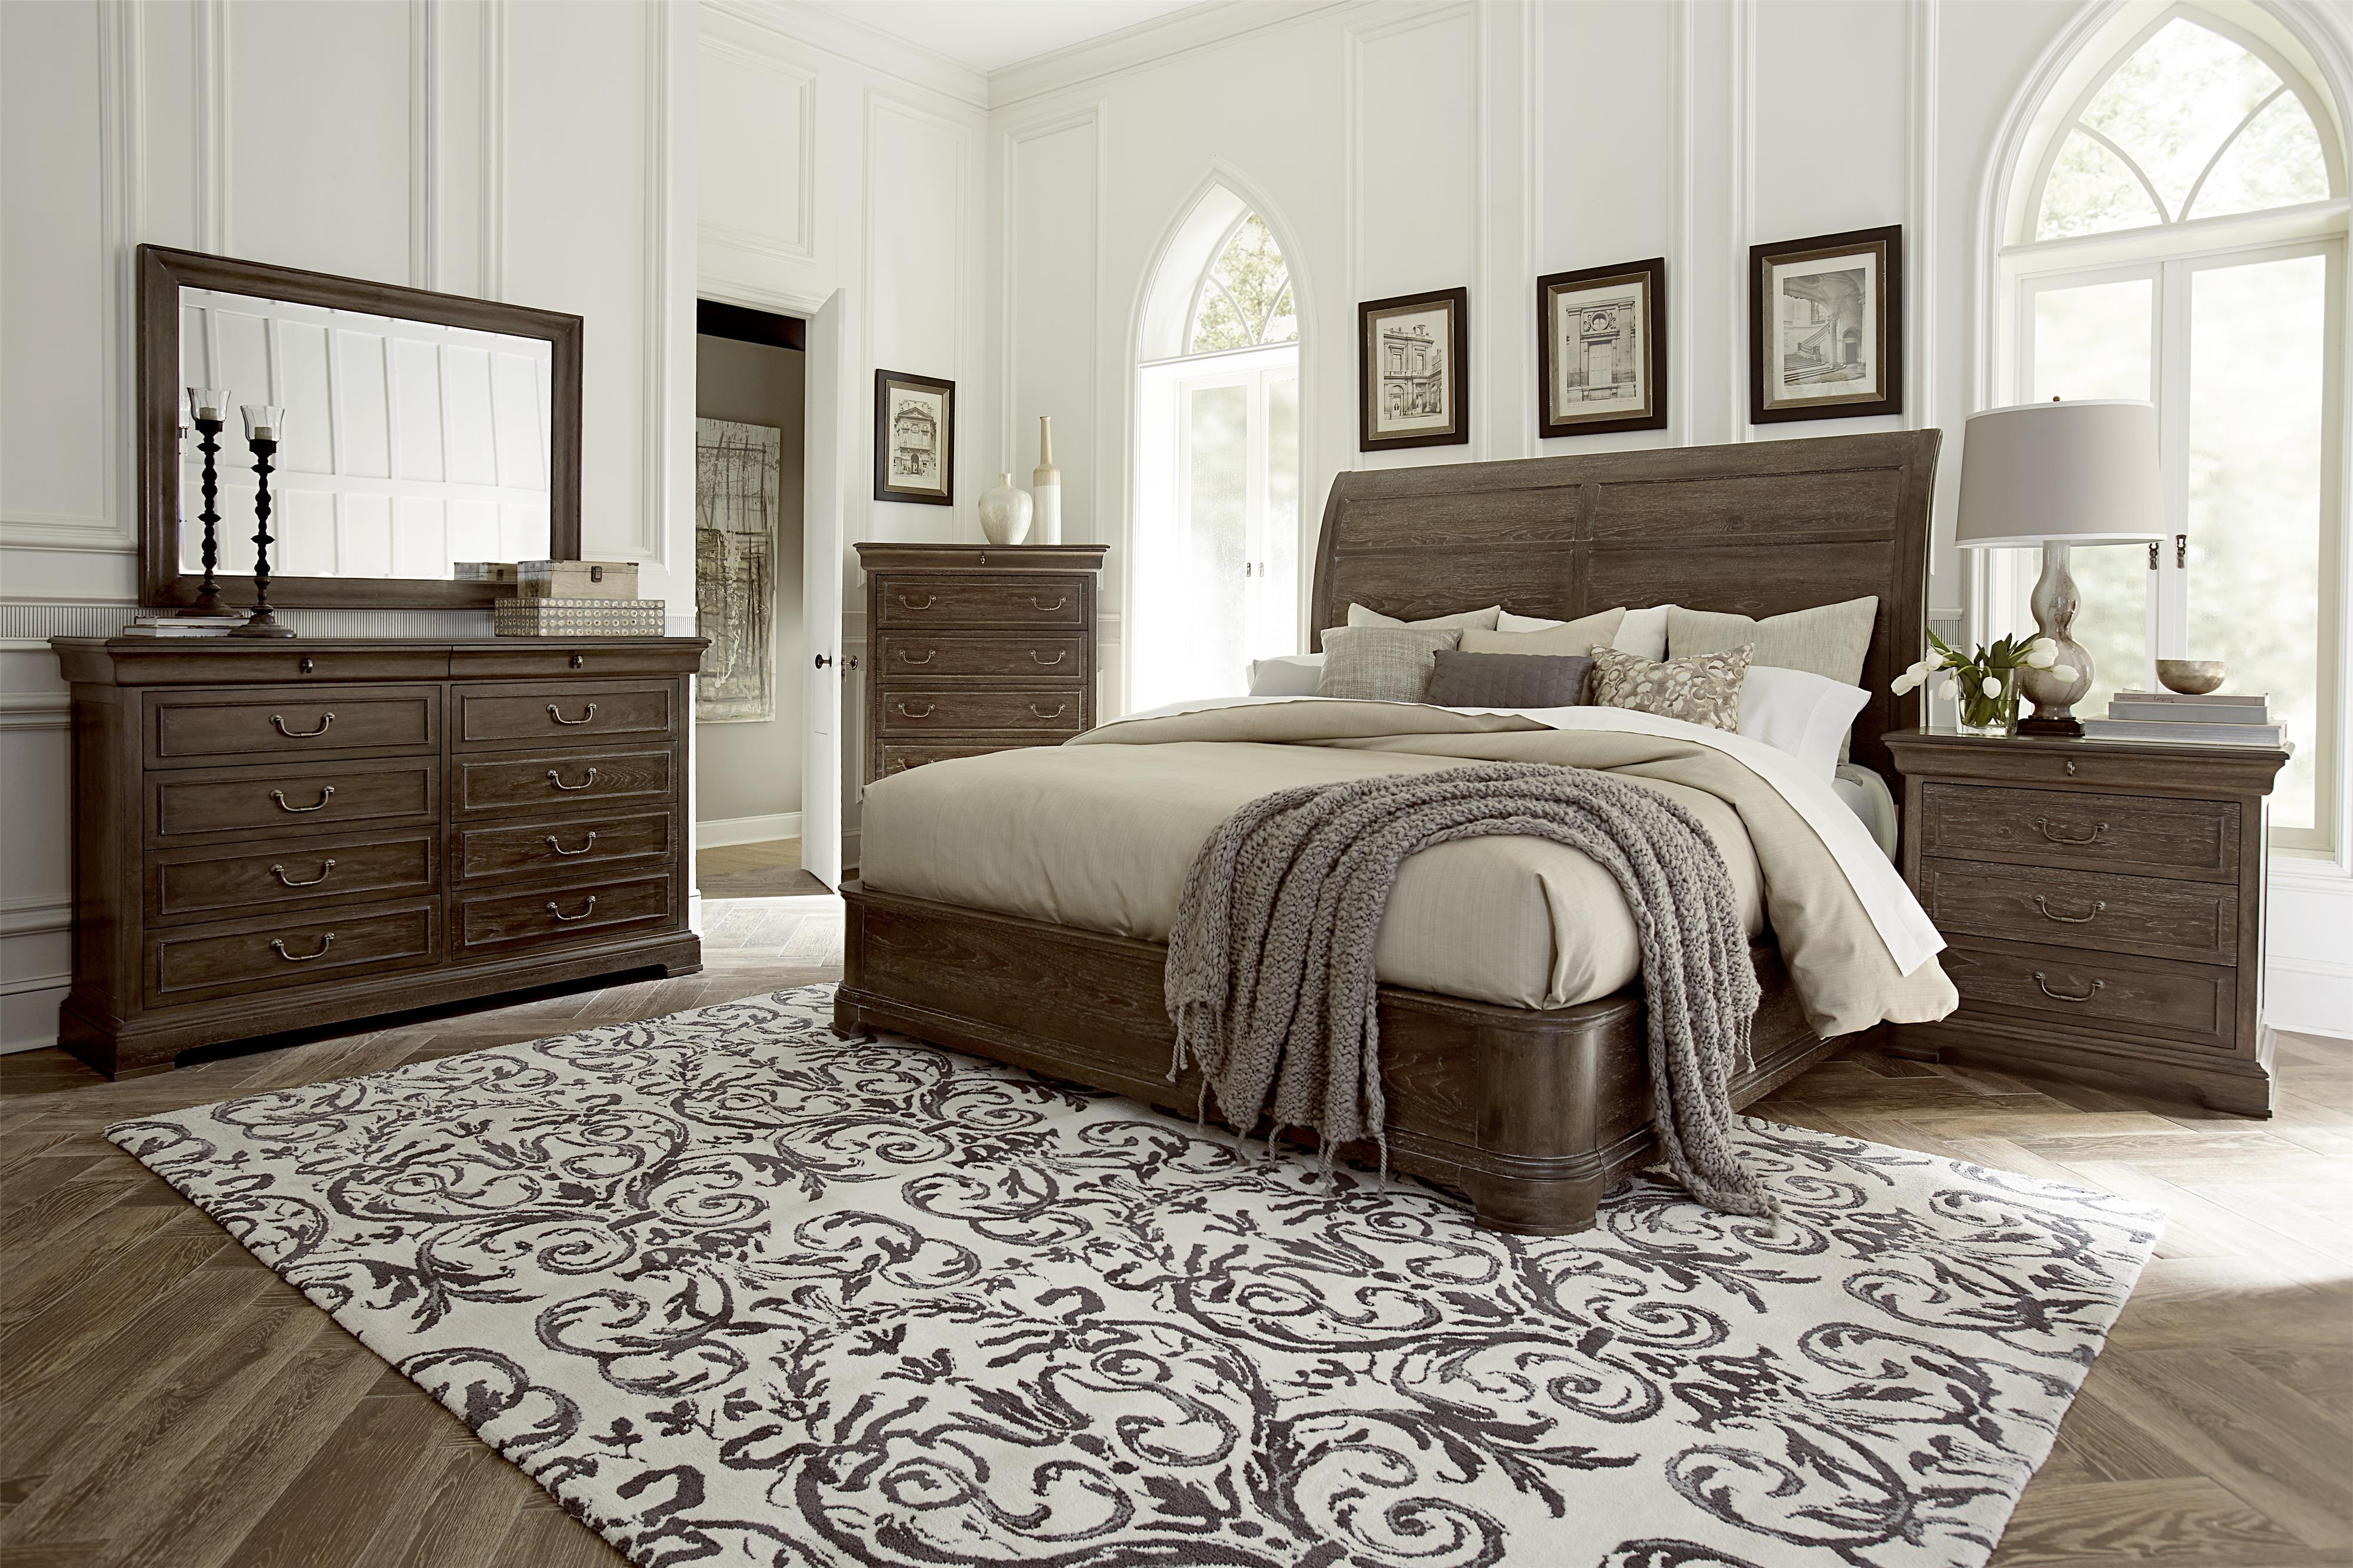 A.R.T. Furniture Inc Saint Germain King Bedroom Group - Item Number: 215000-1513 K Bedroom Group 1